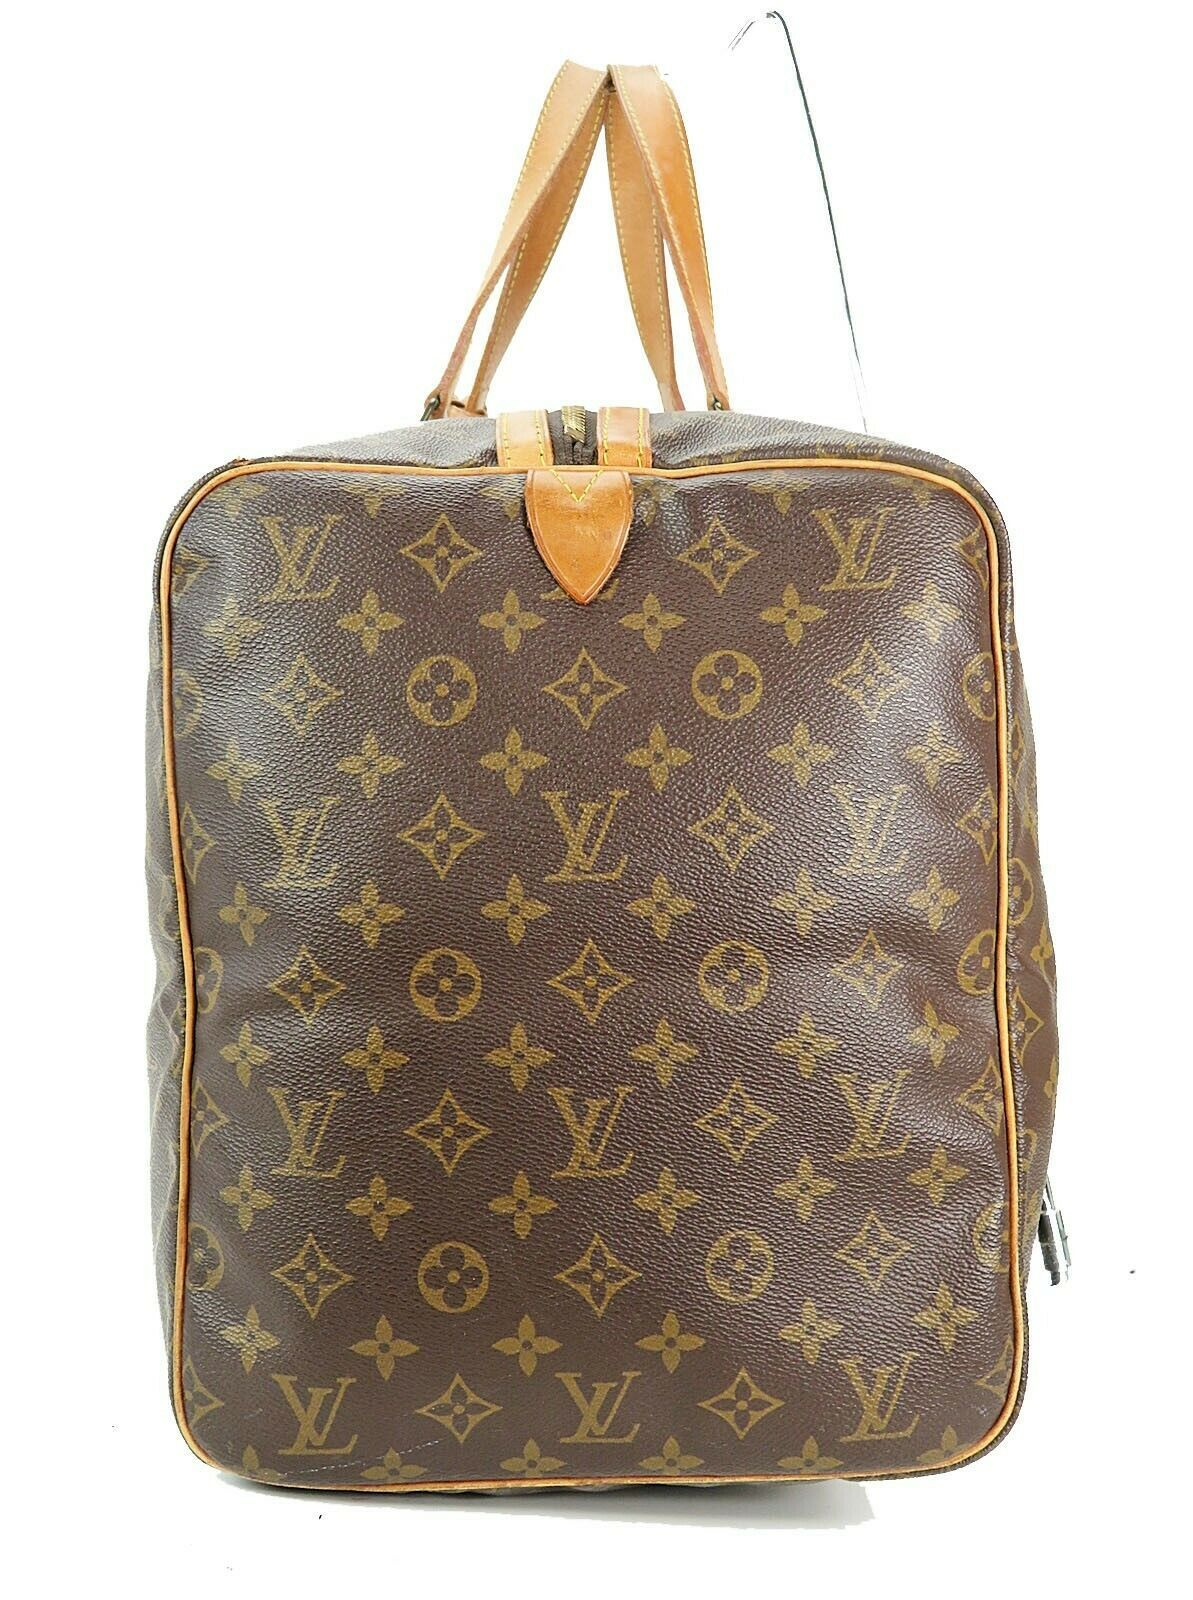 Authentic LOUIS VUITTON Sac Souple 55 Monogram Tote Duffle Bag #34978 image 4